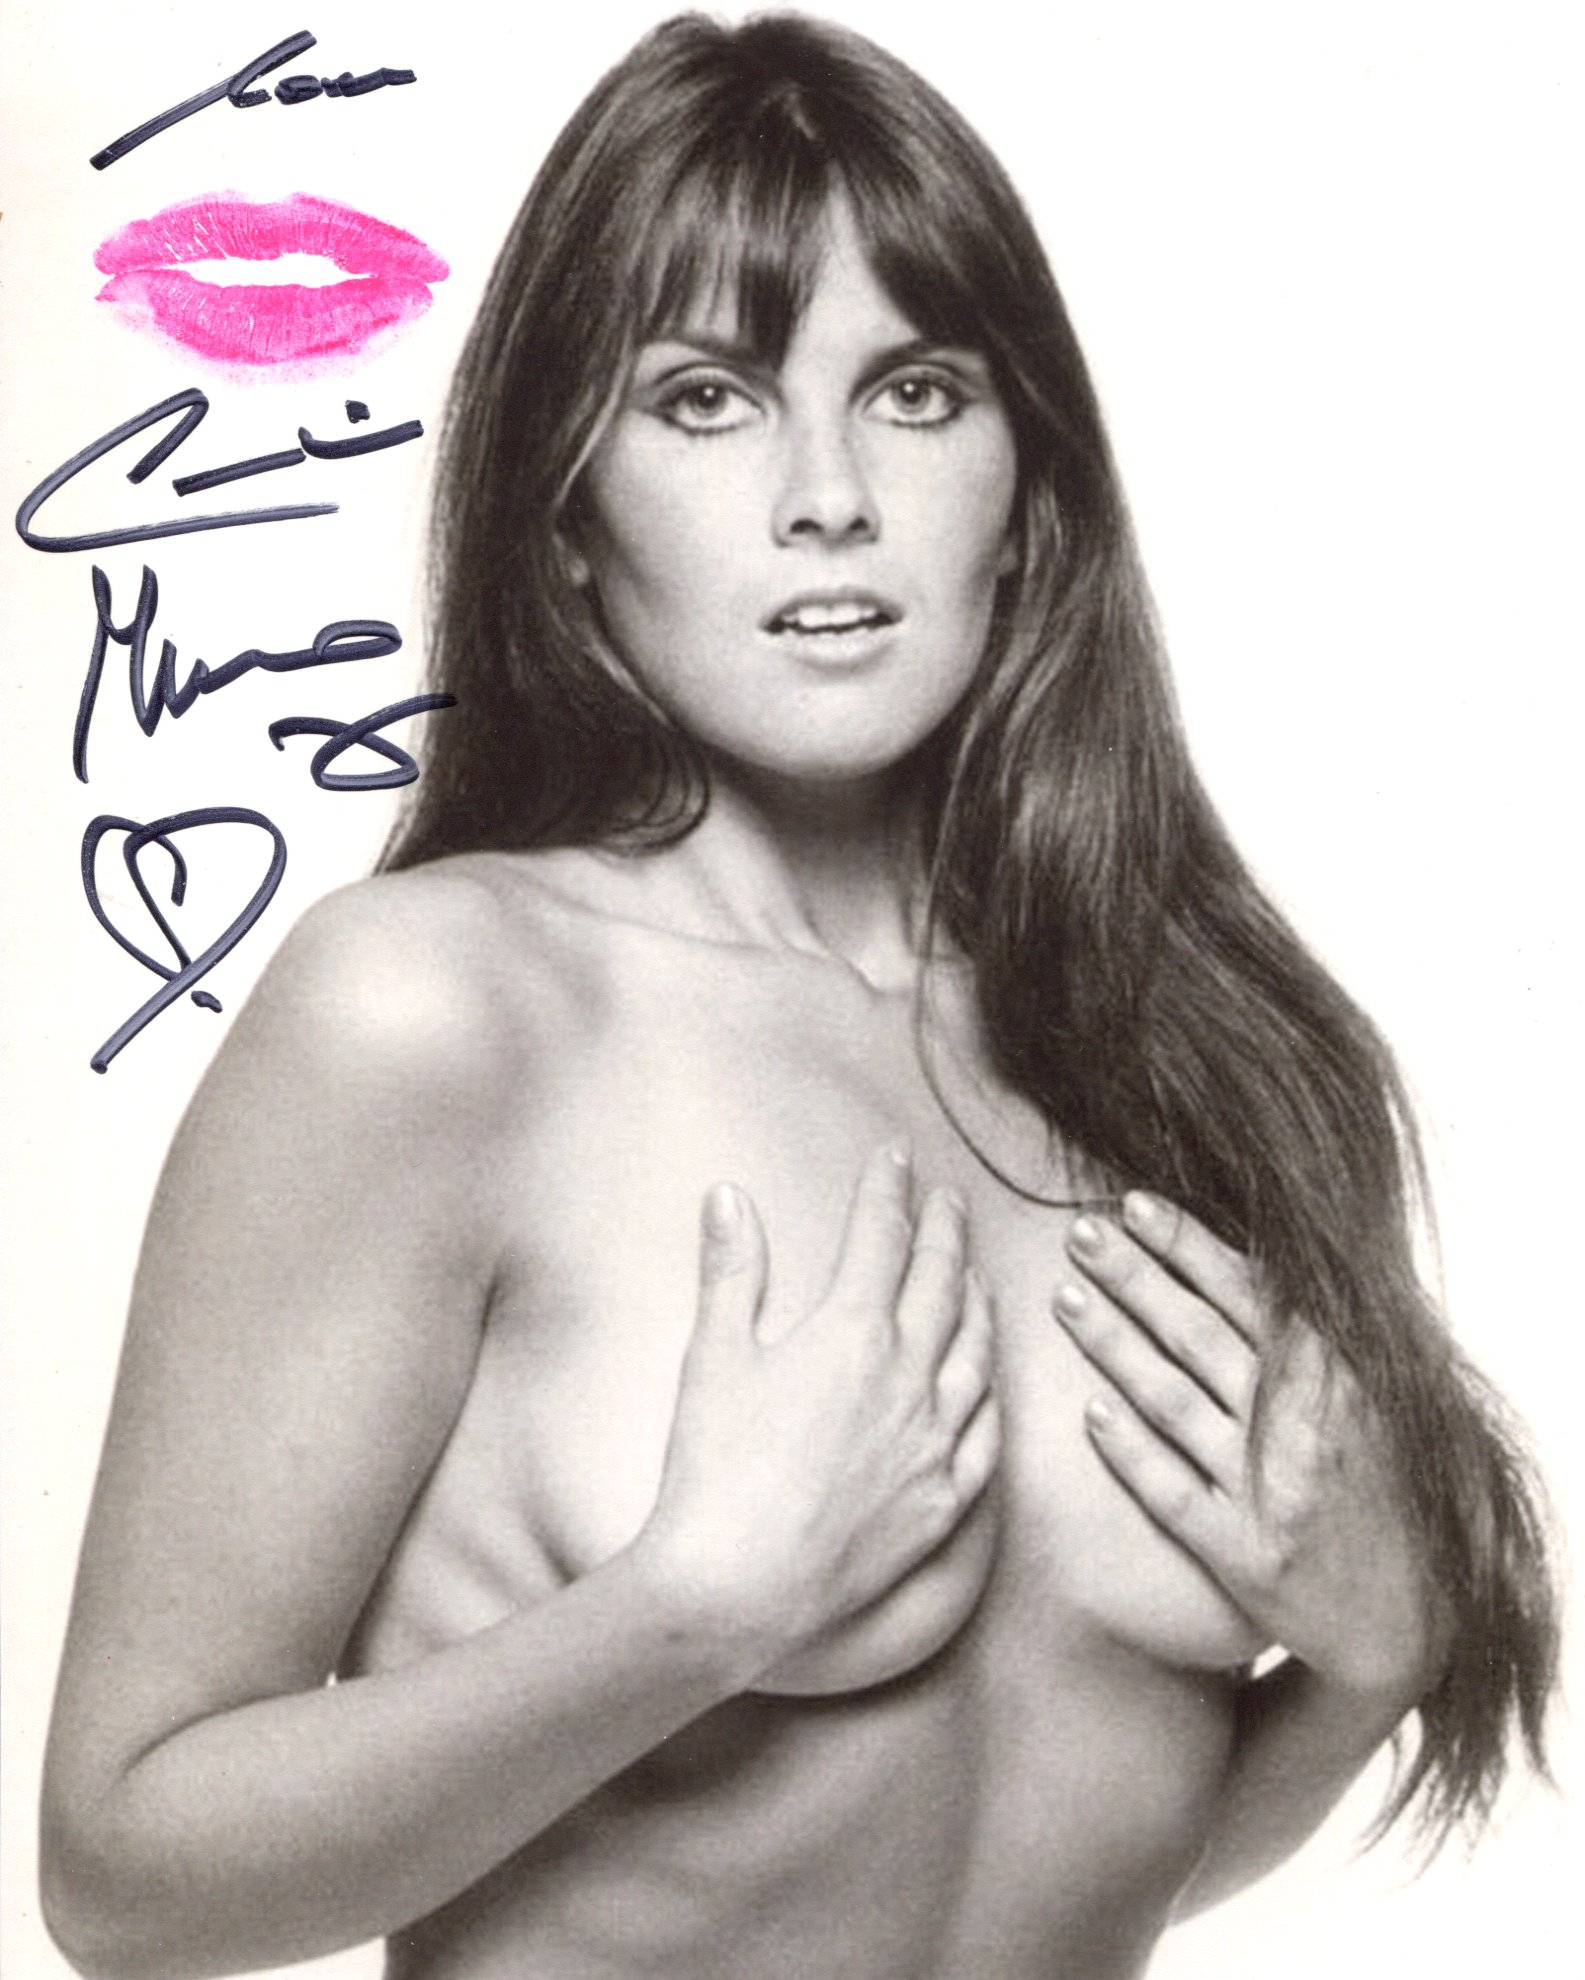 007 Bond girl. The Spy Who Loved Me actress Caroline Munro signed 8x10 photo in sexy pose, she has